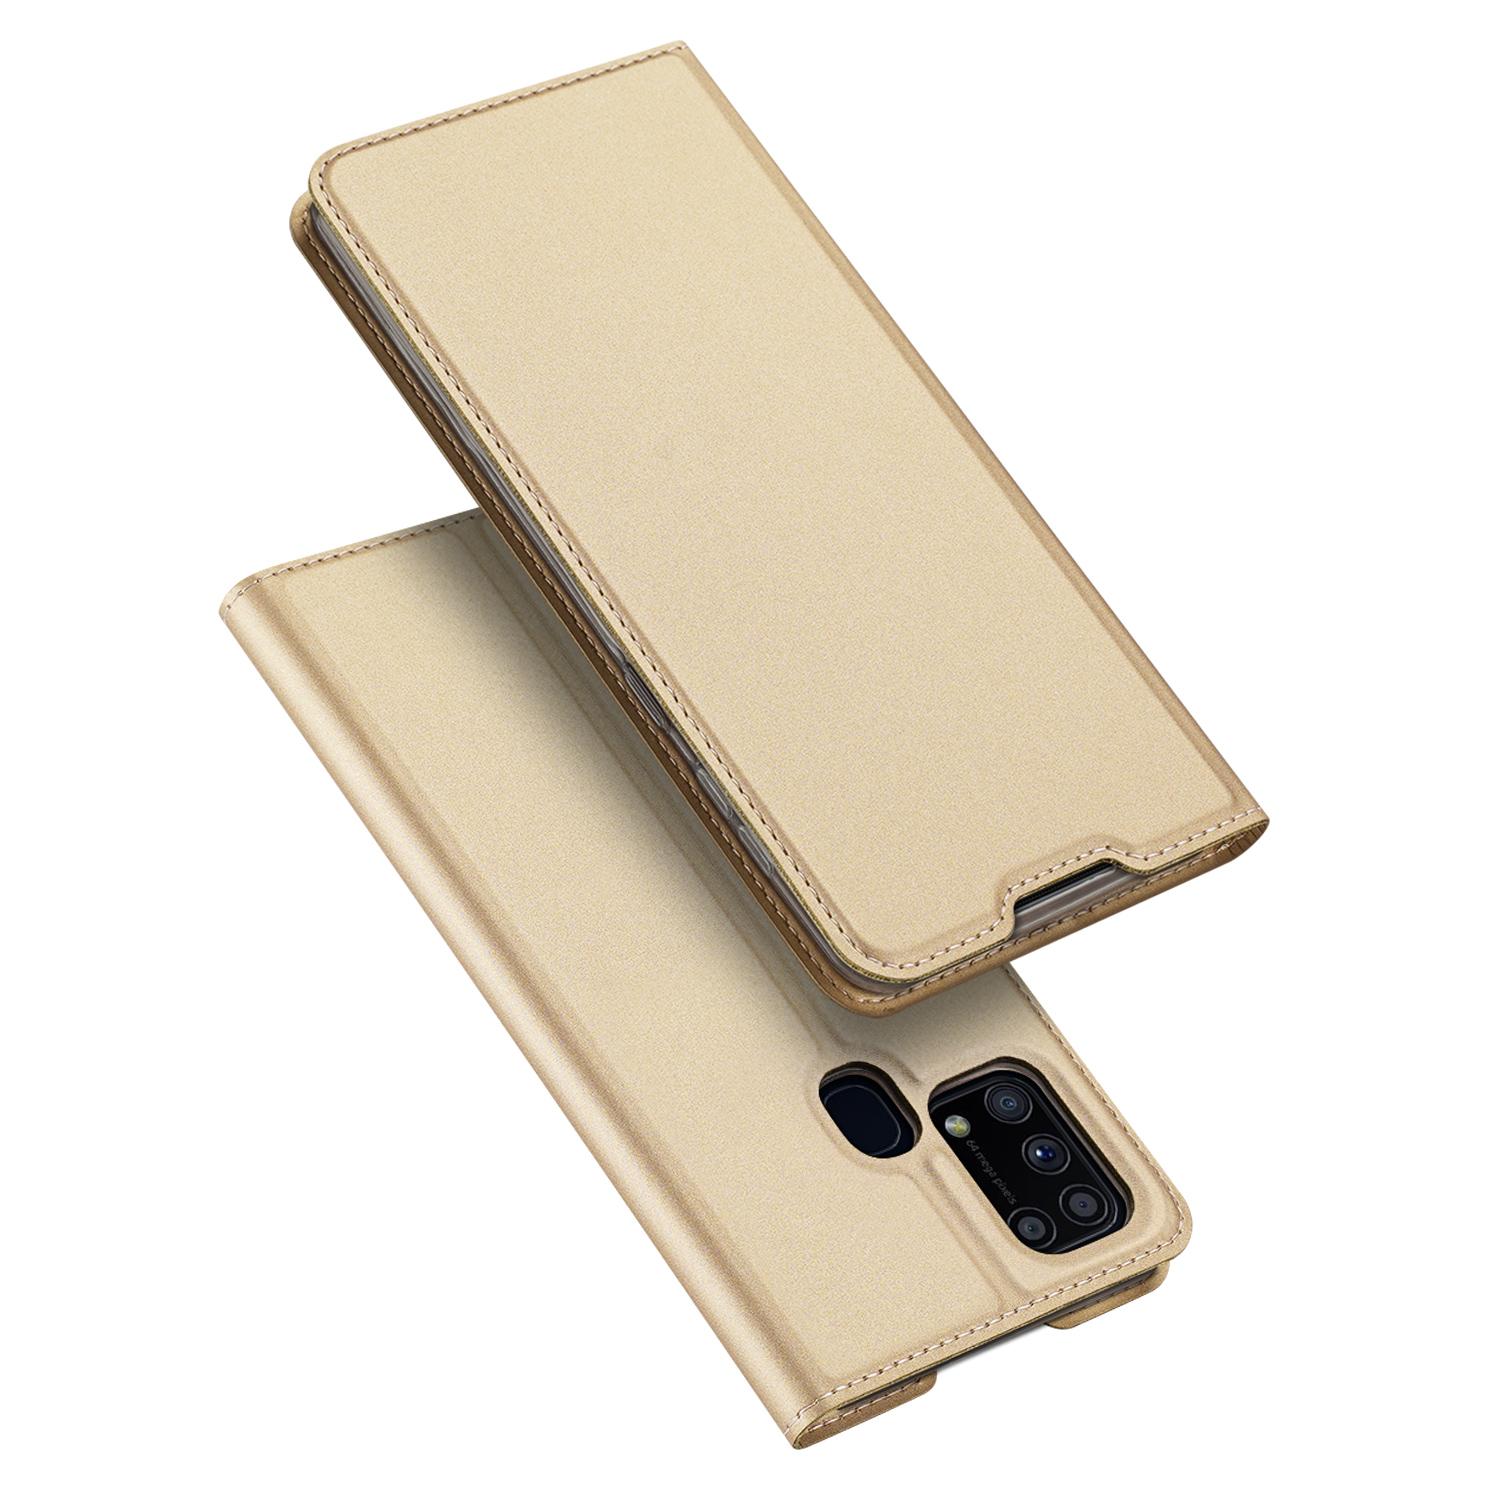 DUX DUCIS For Samsung M31 Leather Mobile Phone Cover Magnetic Protective Case Bracket with Cards Slot Golden